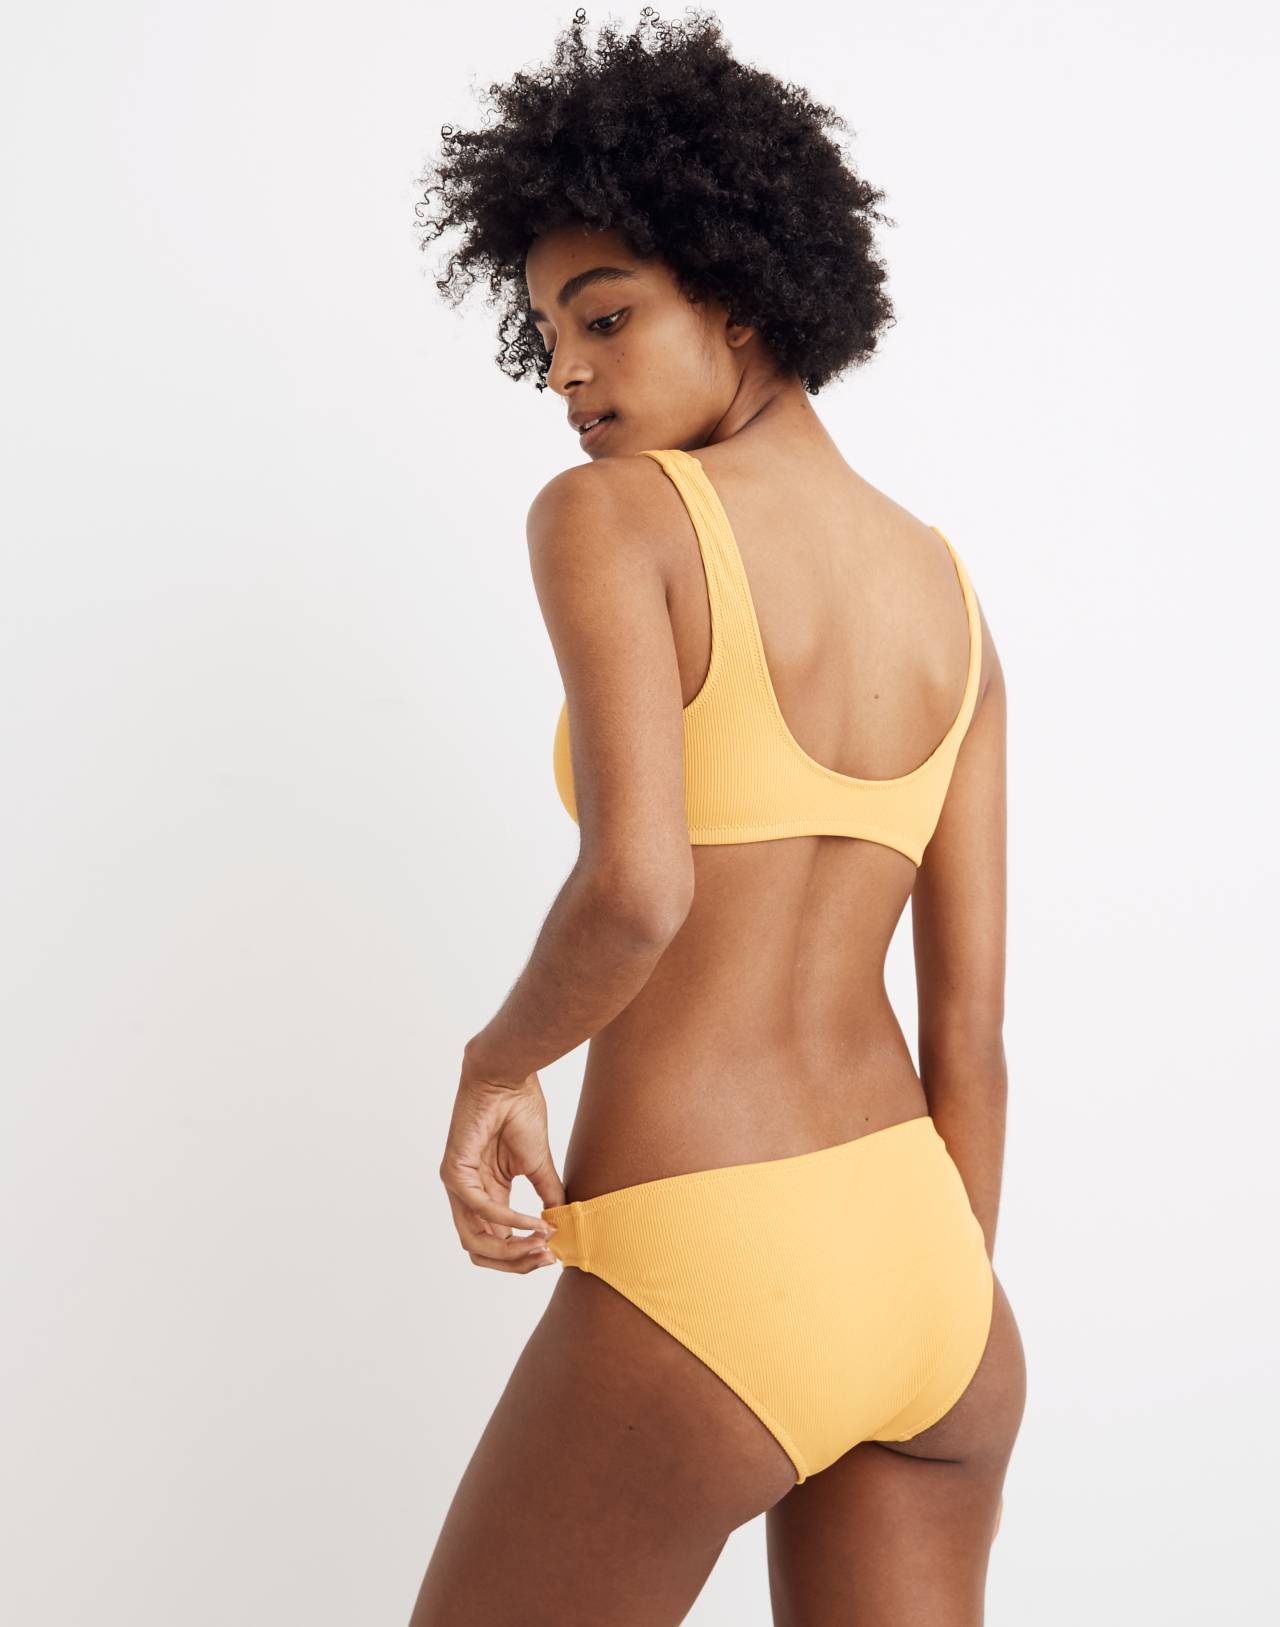 Madewell Second Wave Ribbed Henley Bikini Top in tungsten glow image 2